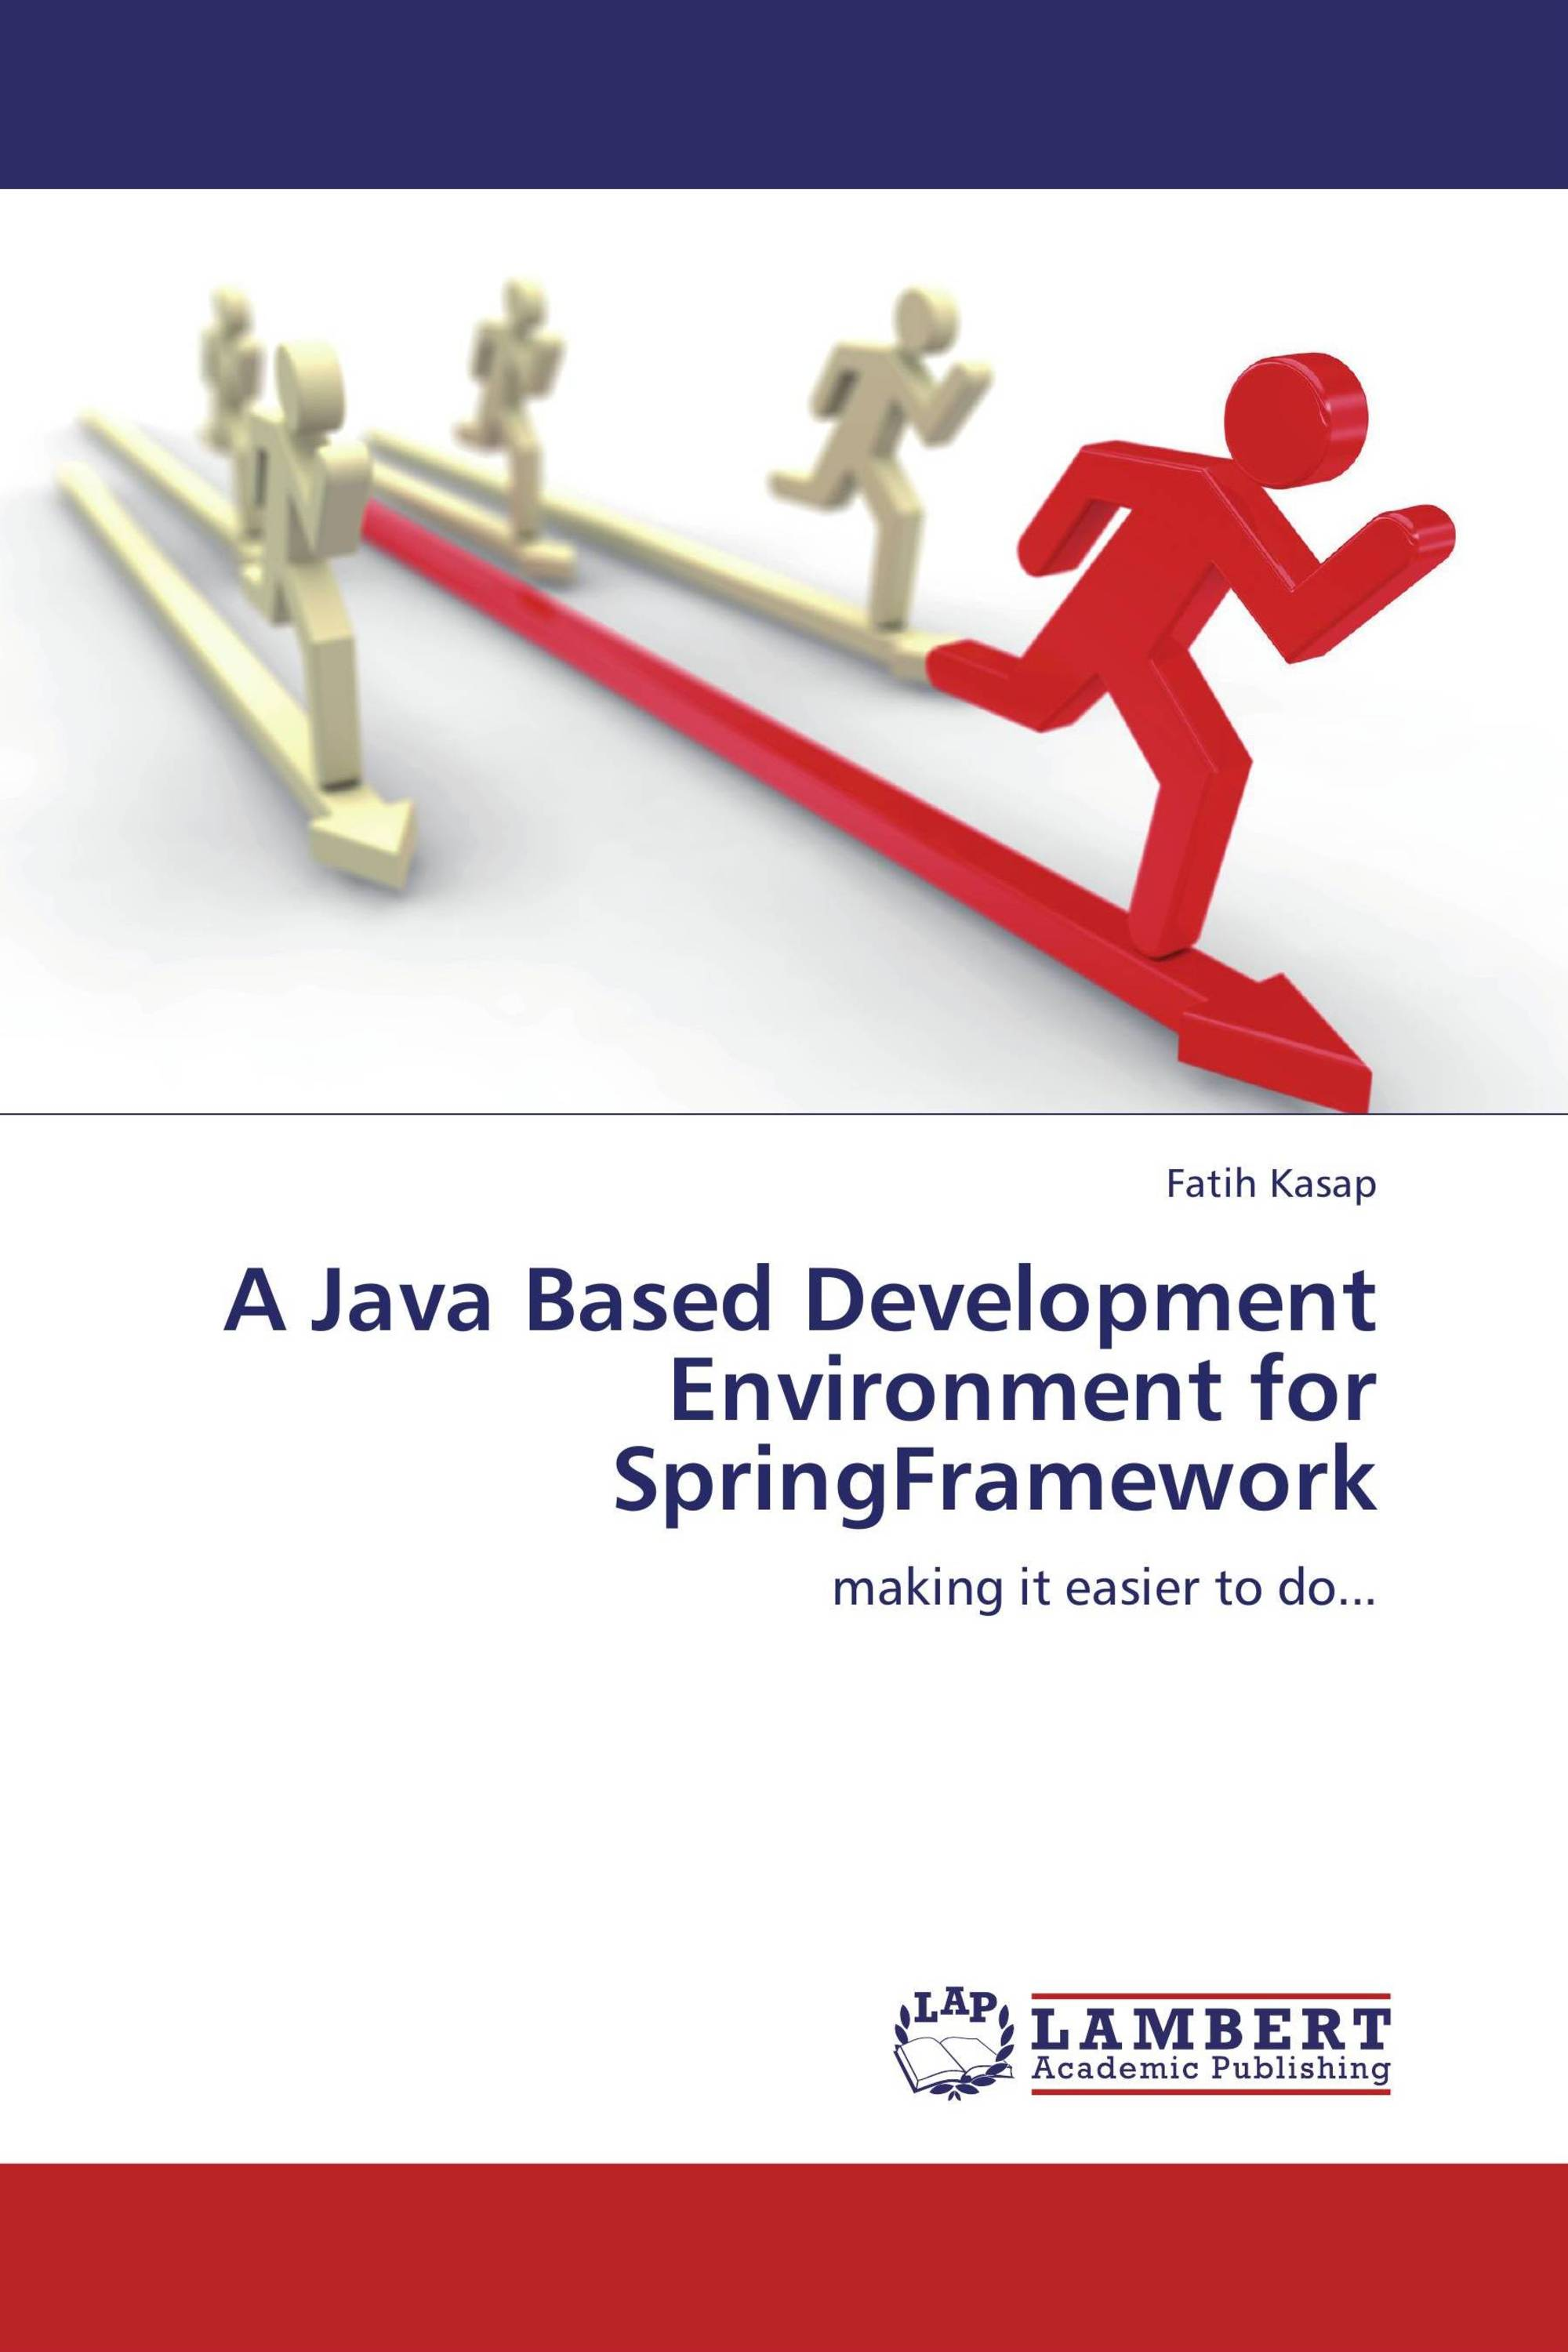 A Java Based Development Environment for SpringFramework